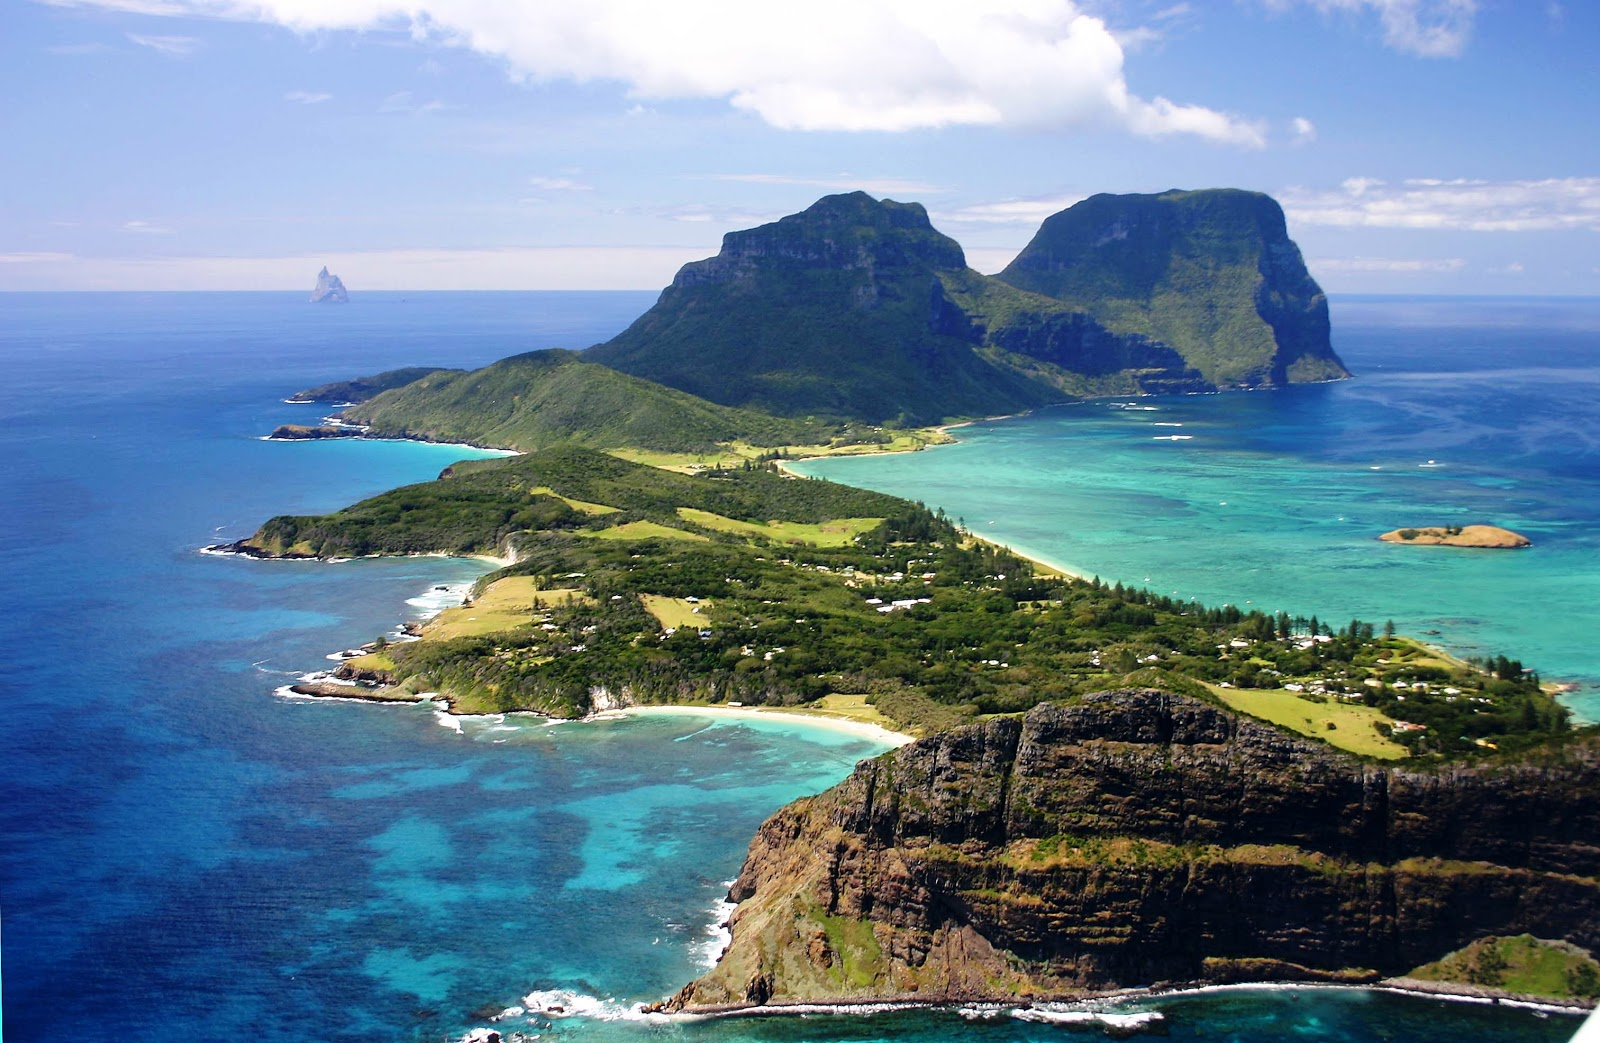 TOP WORLD TRAVEL DESTINATIONS: Lord Howe Island, Australia